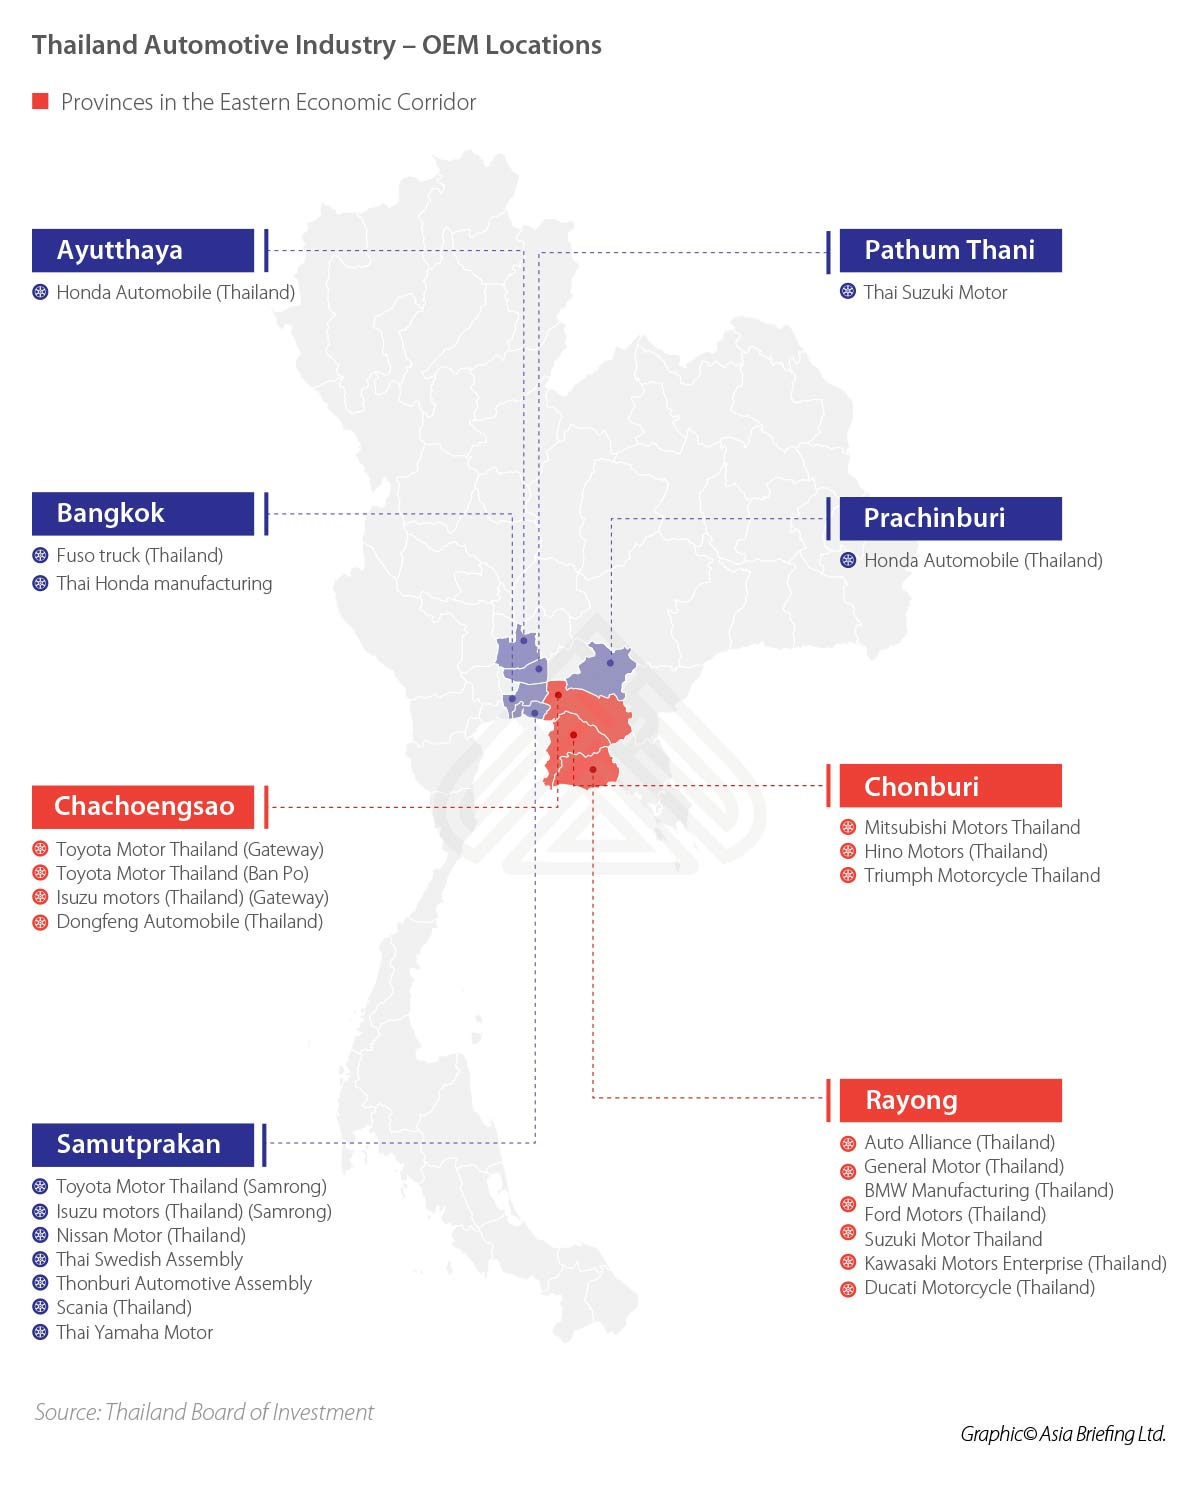 ASB-Thailand-Automotive-Industry---OEM-Locations